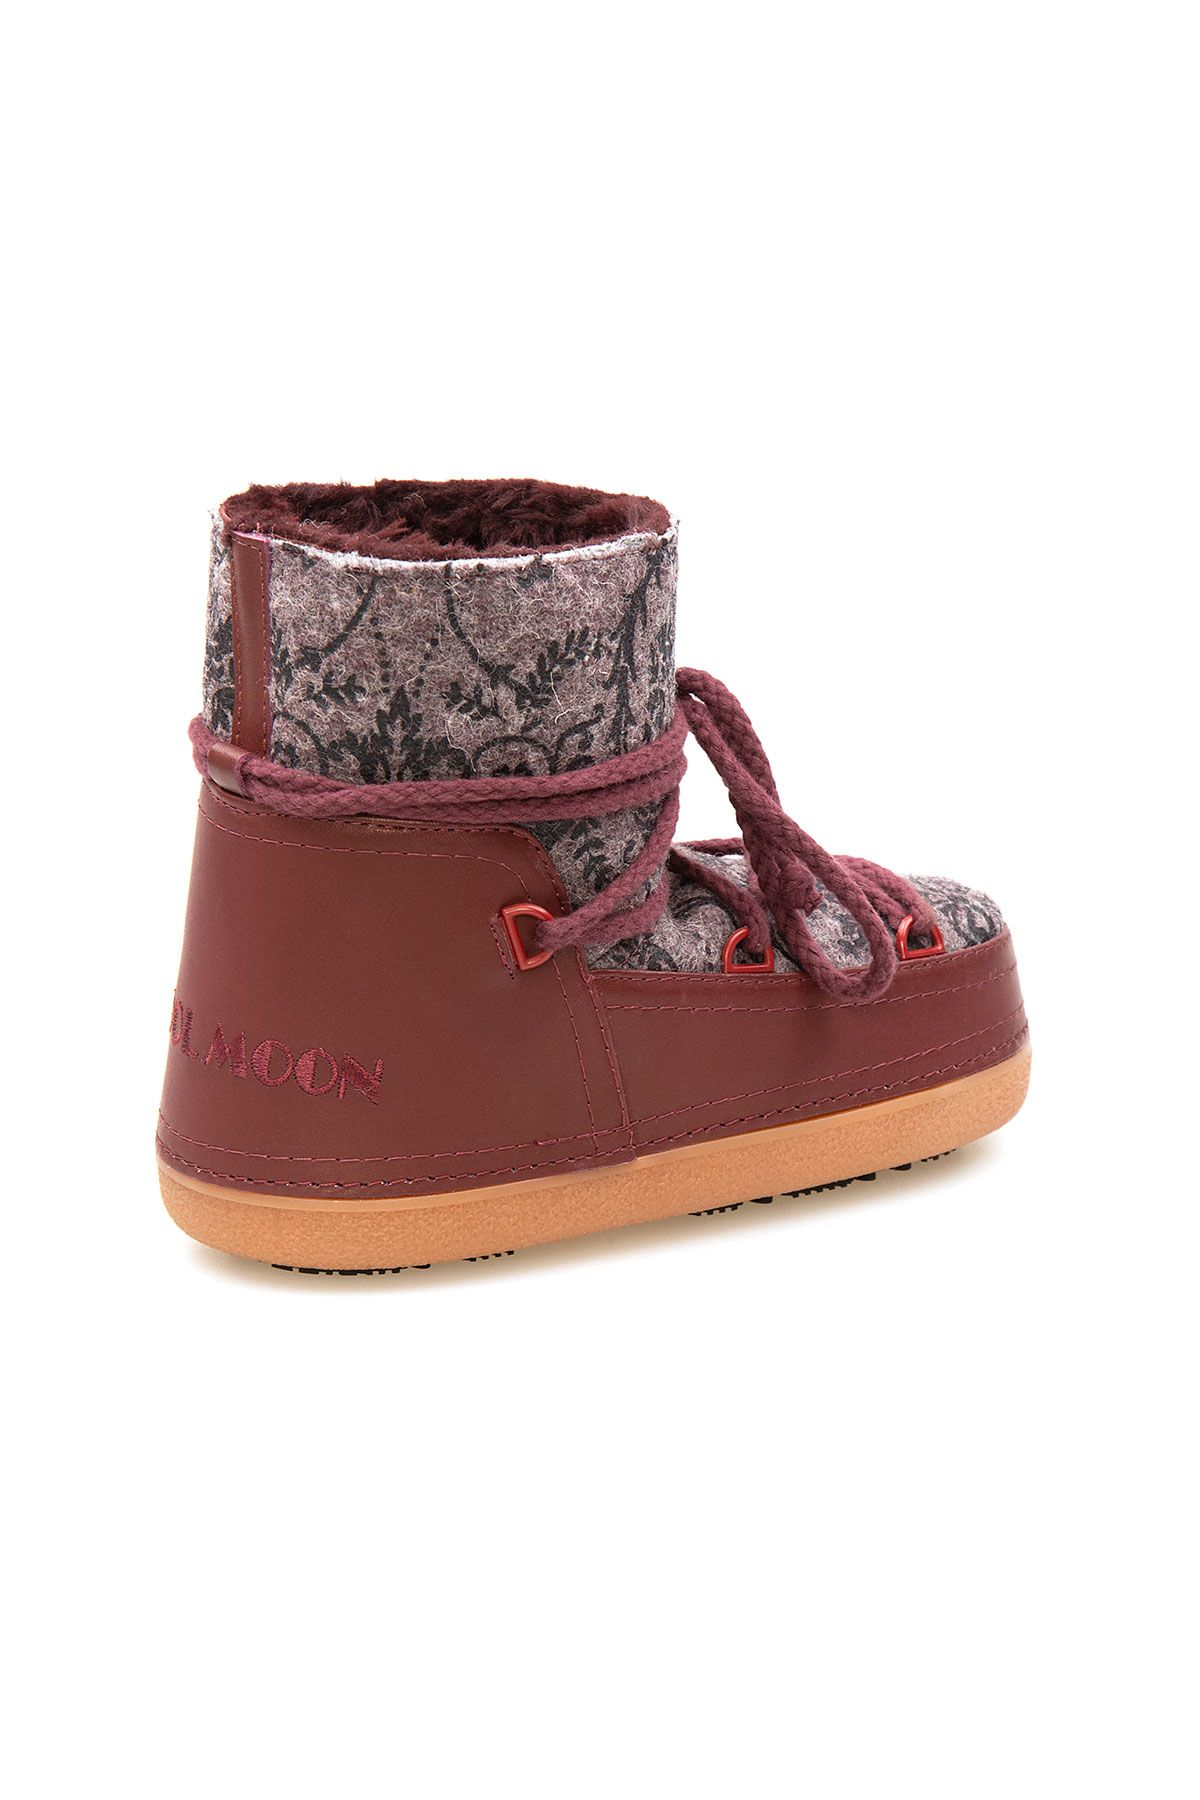 Cool Moon Genuine Sheepskin Lined Women's Snow Boots 251313 Claret red